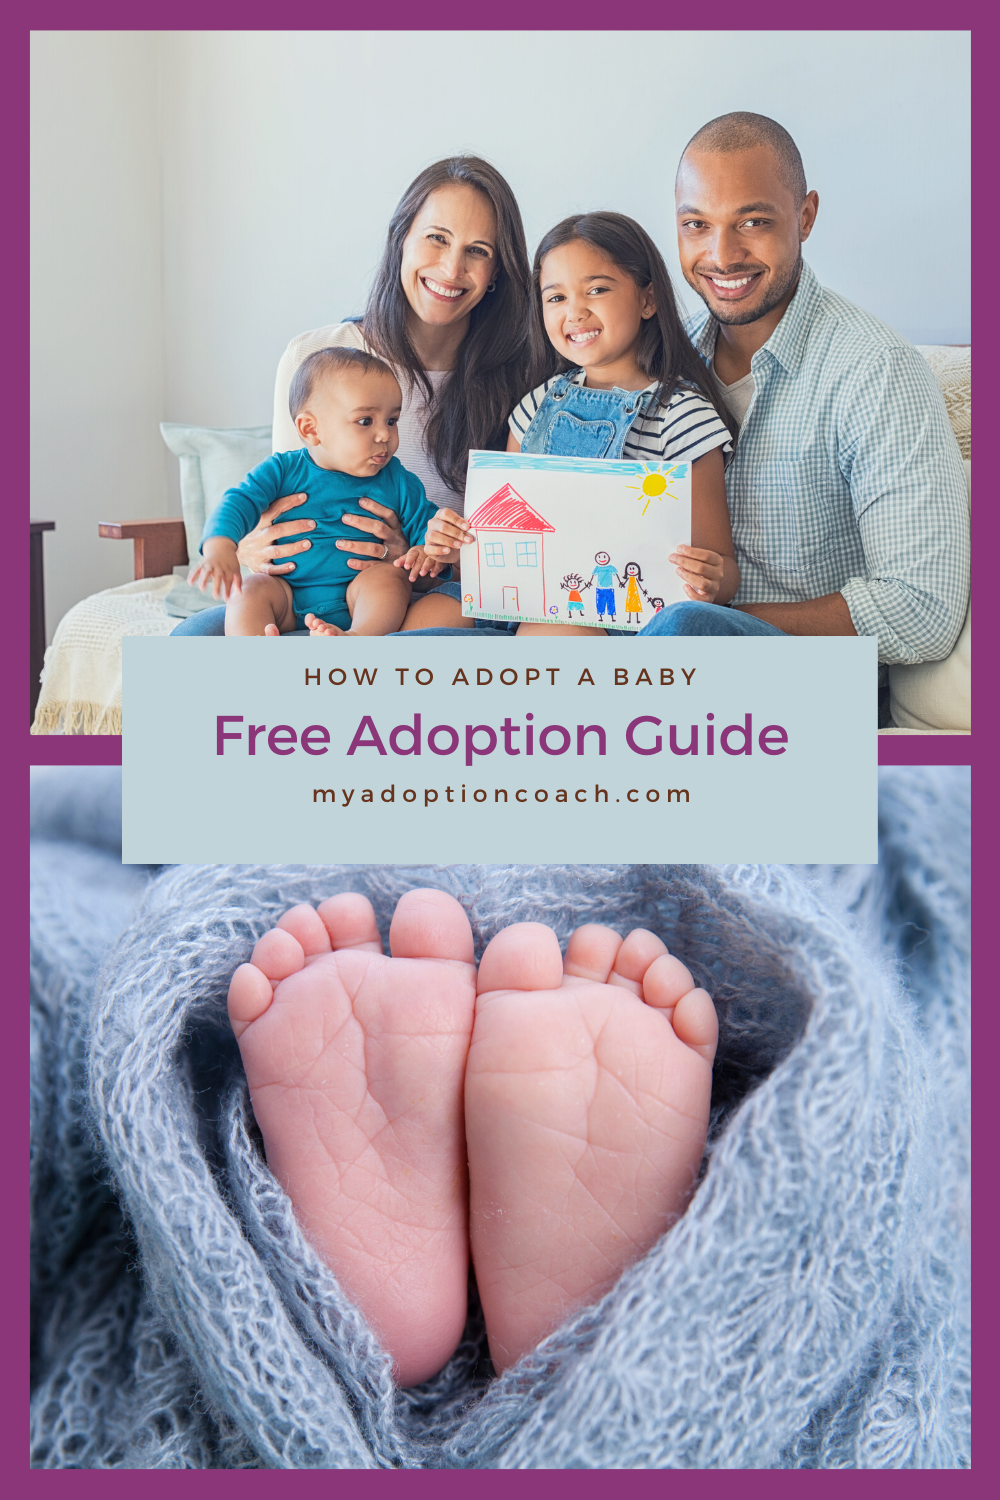 There Are Multiple Ways To Adopt A Child This Overview Gives You A Summary Of Each Option And A Process T In 2020 Infant Adoption Newborn Adoption Baby Adoption Gifts